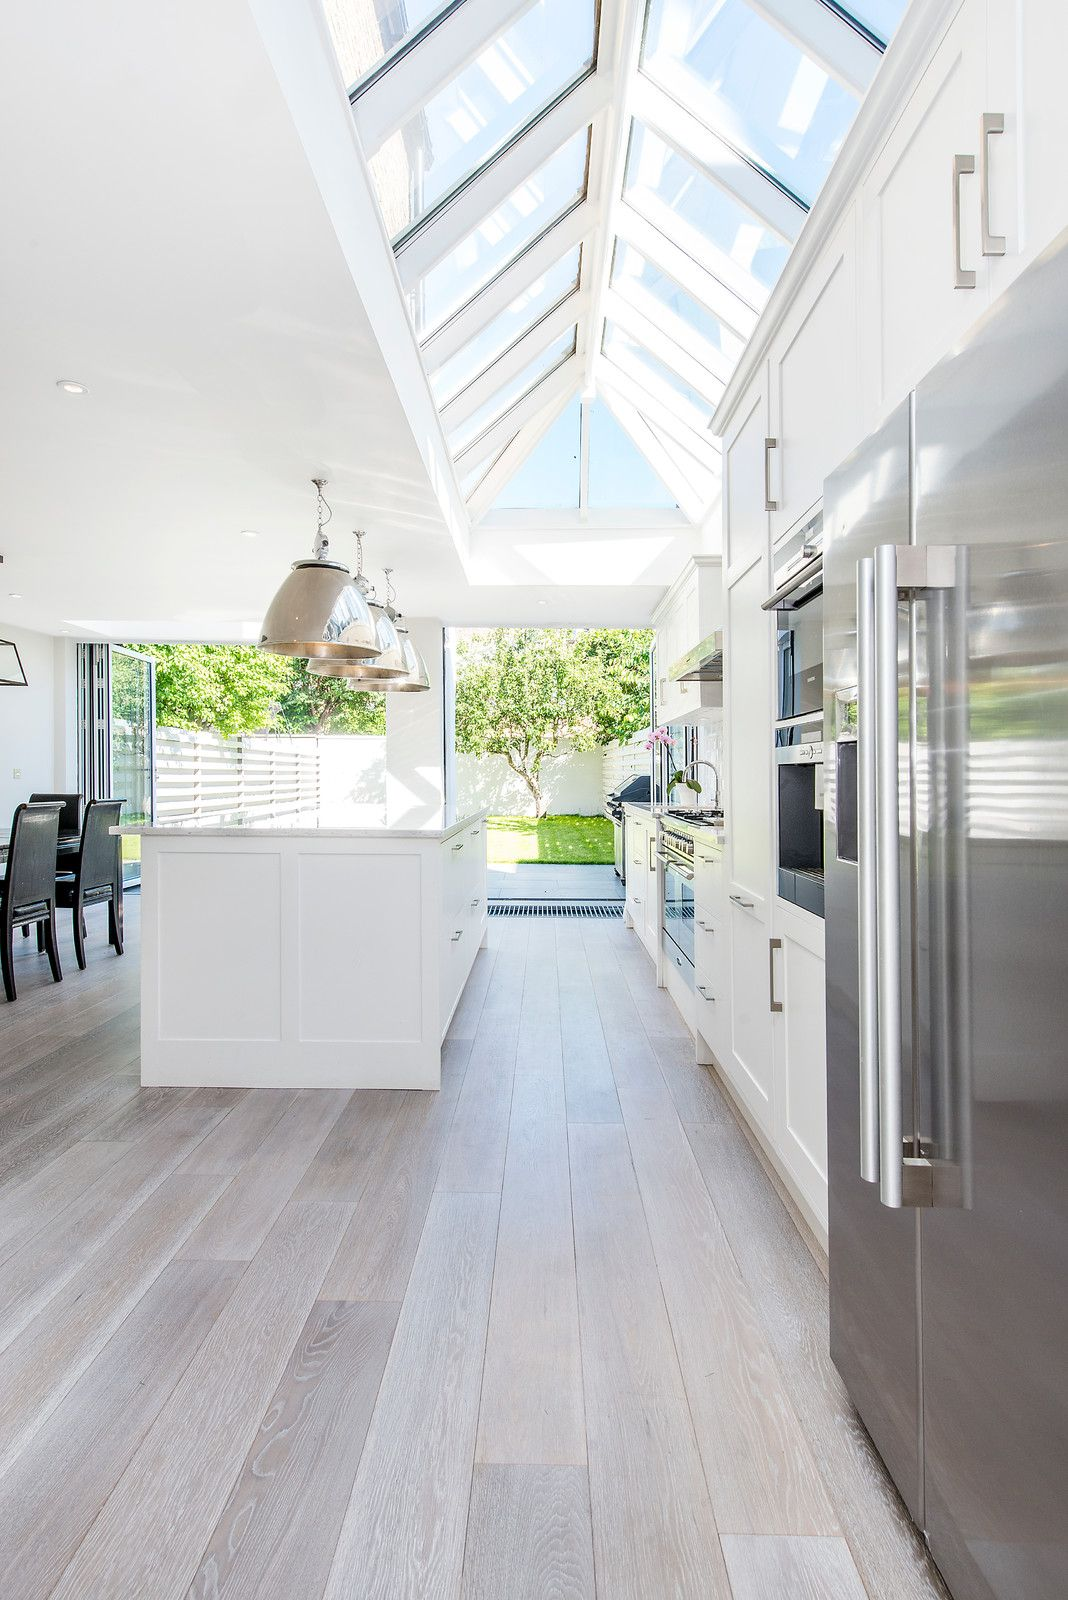 Transitional Galley Light Wood Floor Eat In Kitchen Photo In London With White Cabinets Shaker Cabinets Stainles White Wash Wood Floors White Oak Floors Home